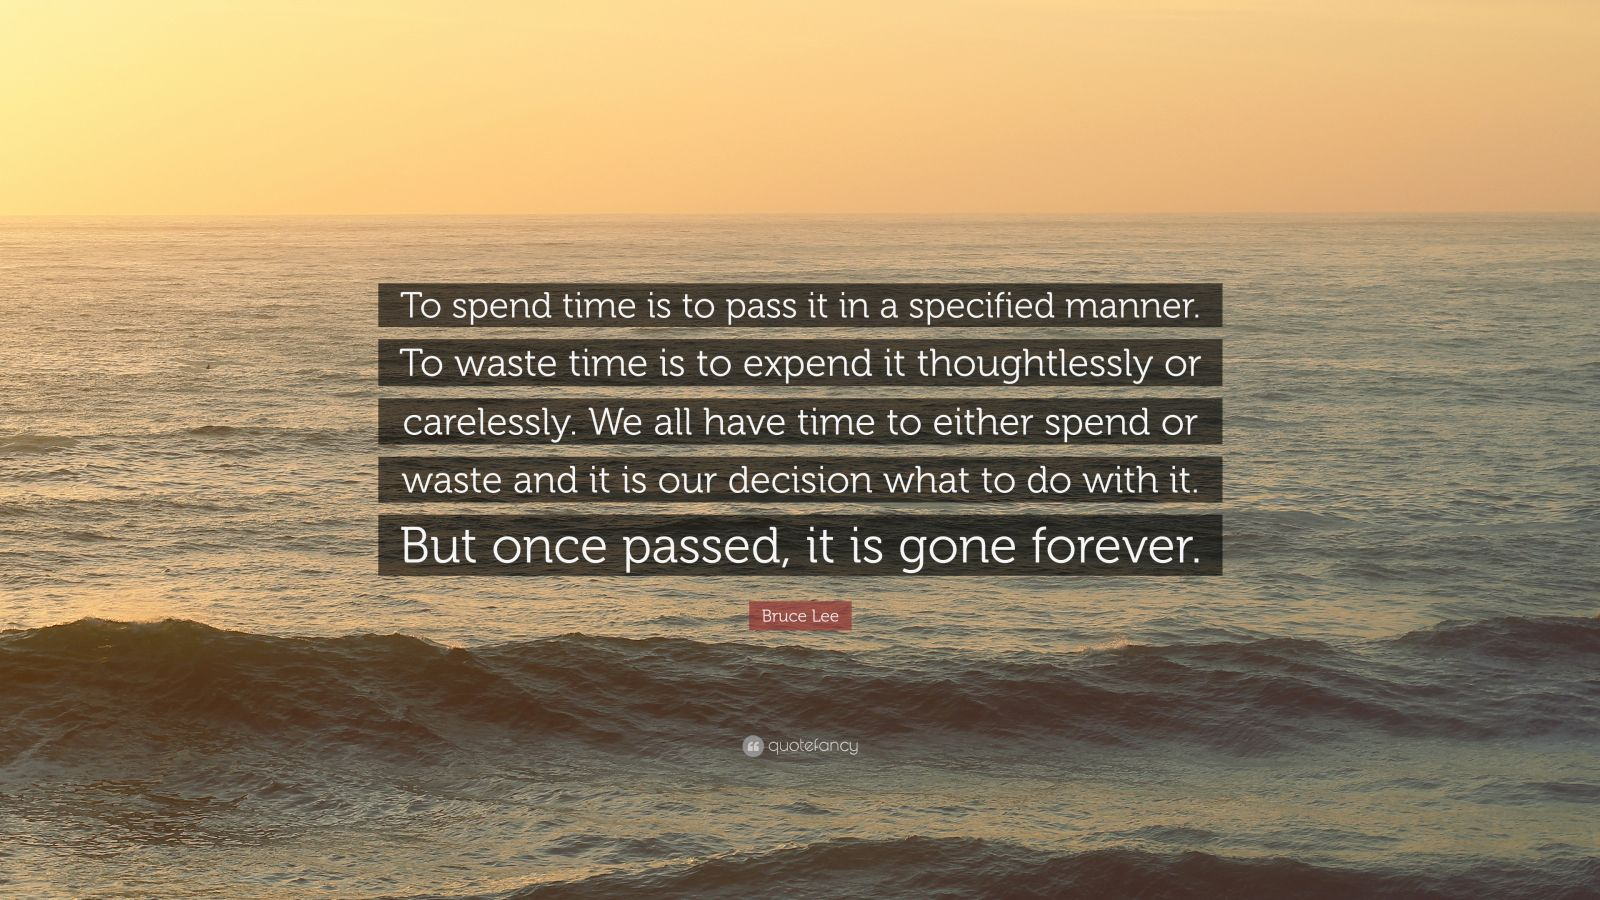 """Bruce Lee Quote: """"To spend time is to pass it in a specified manner. To waste time is to expend it thoughtlessly or carelessly. We all have time to either spend or waste and it is our decision what to do with it. But once passed, it is gone forever."""""""